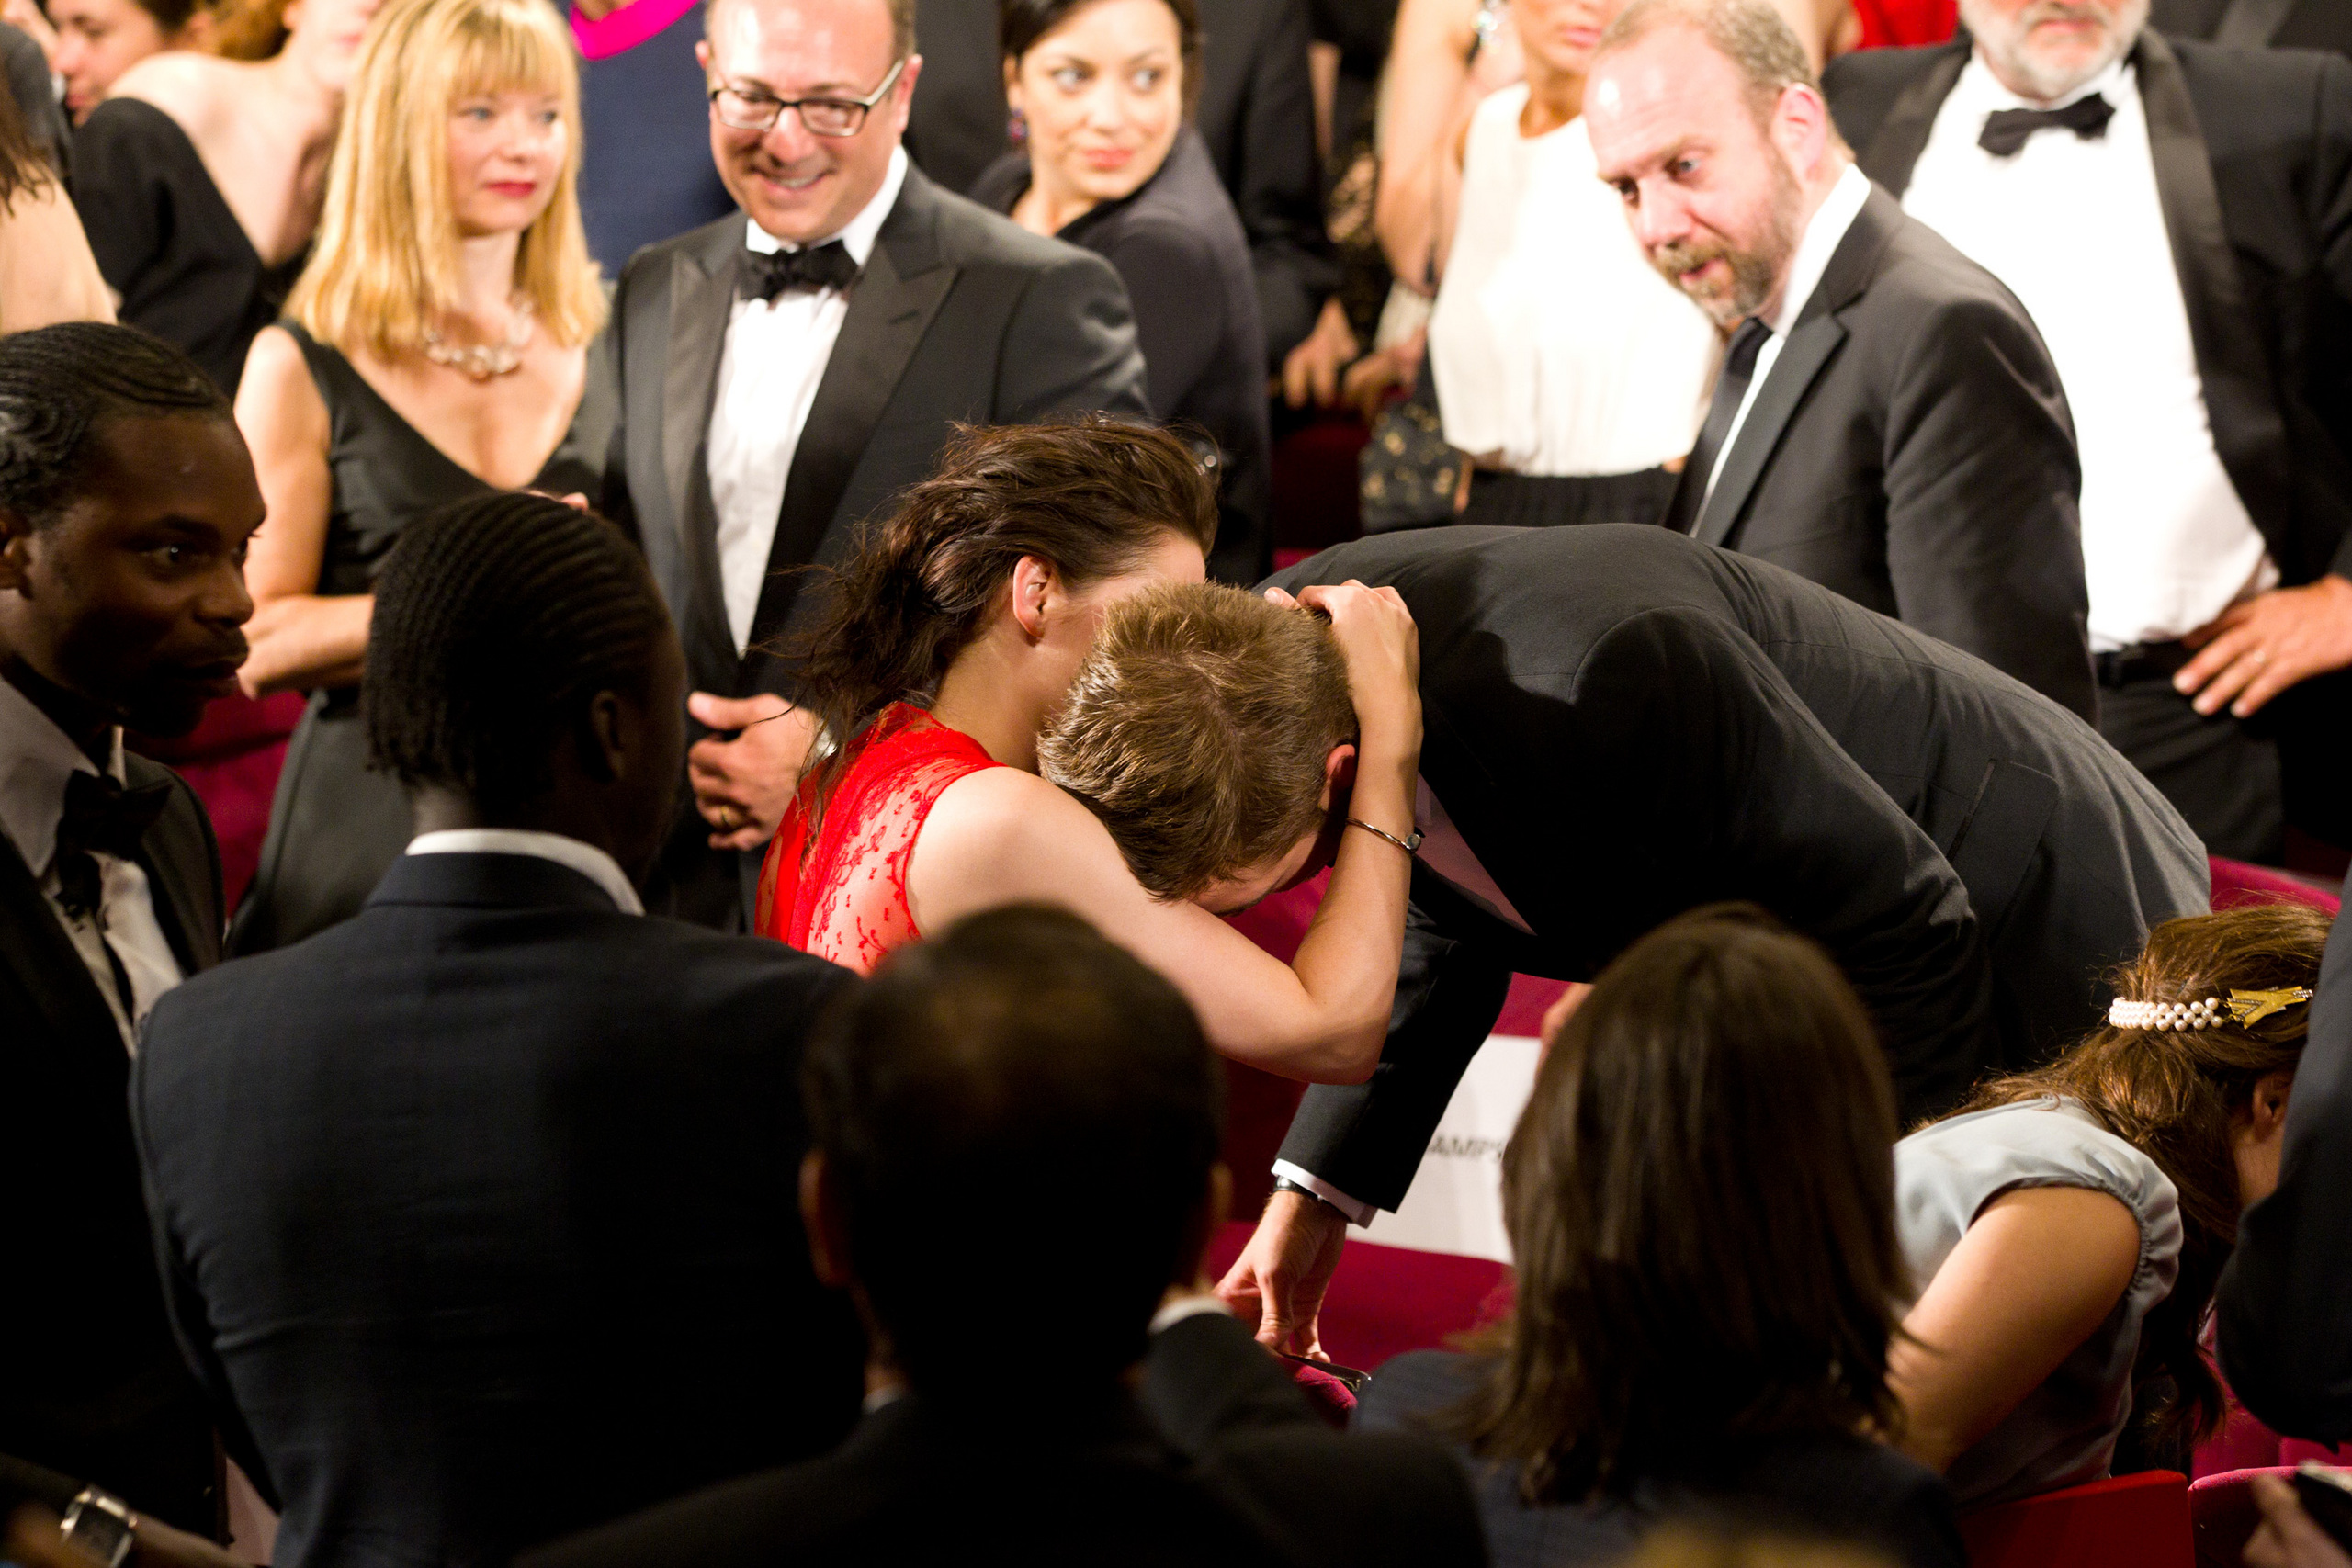 Cannes 2012 - Robert Pattinson & Kristen Stewart Photo (30942470 ...robert pattinson and kristen stewart